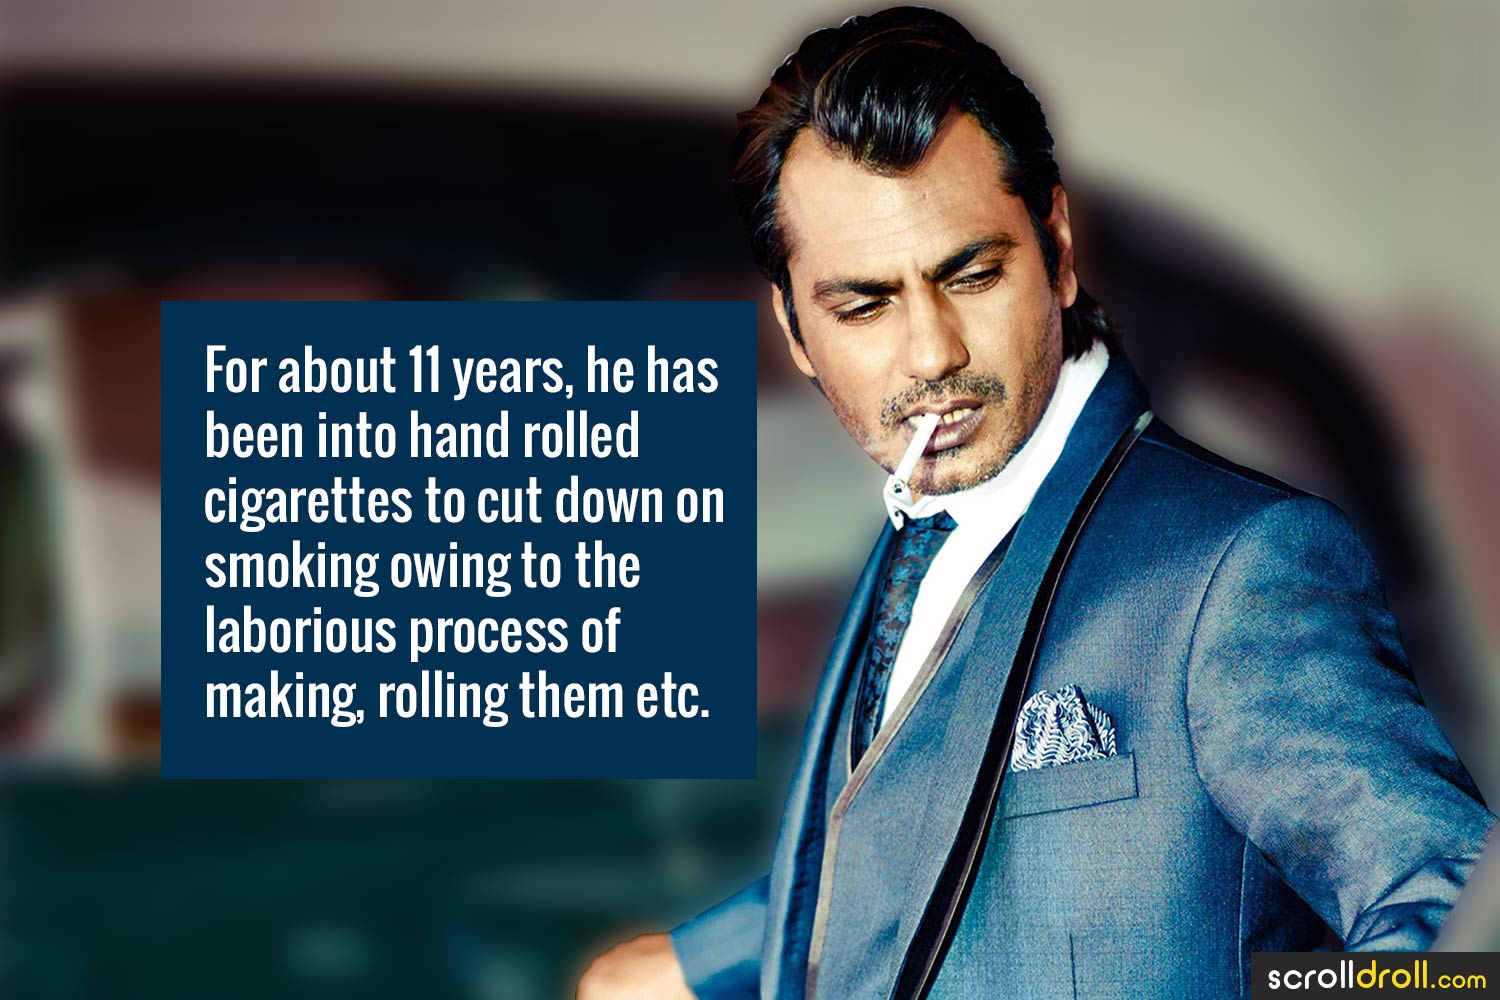 Facts about Nawazuddin Siddique-For about 11 years,he has been into hand rolled cigarettes to cut down on smoking owning to the laborious process of making rolling them etc.